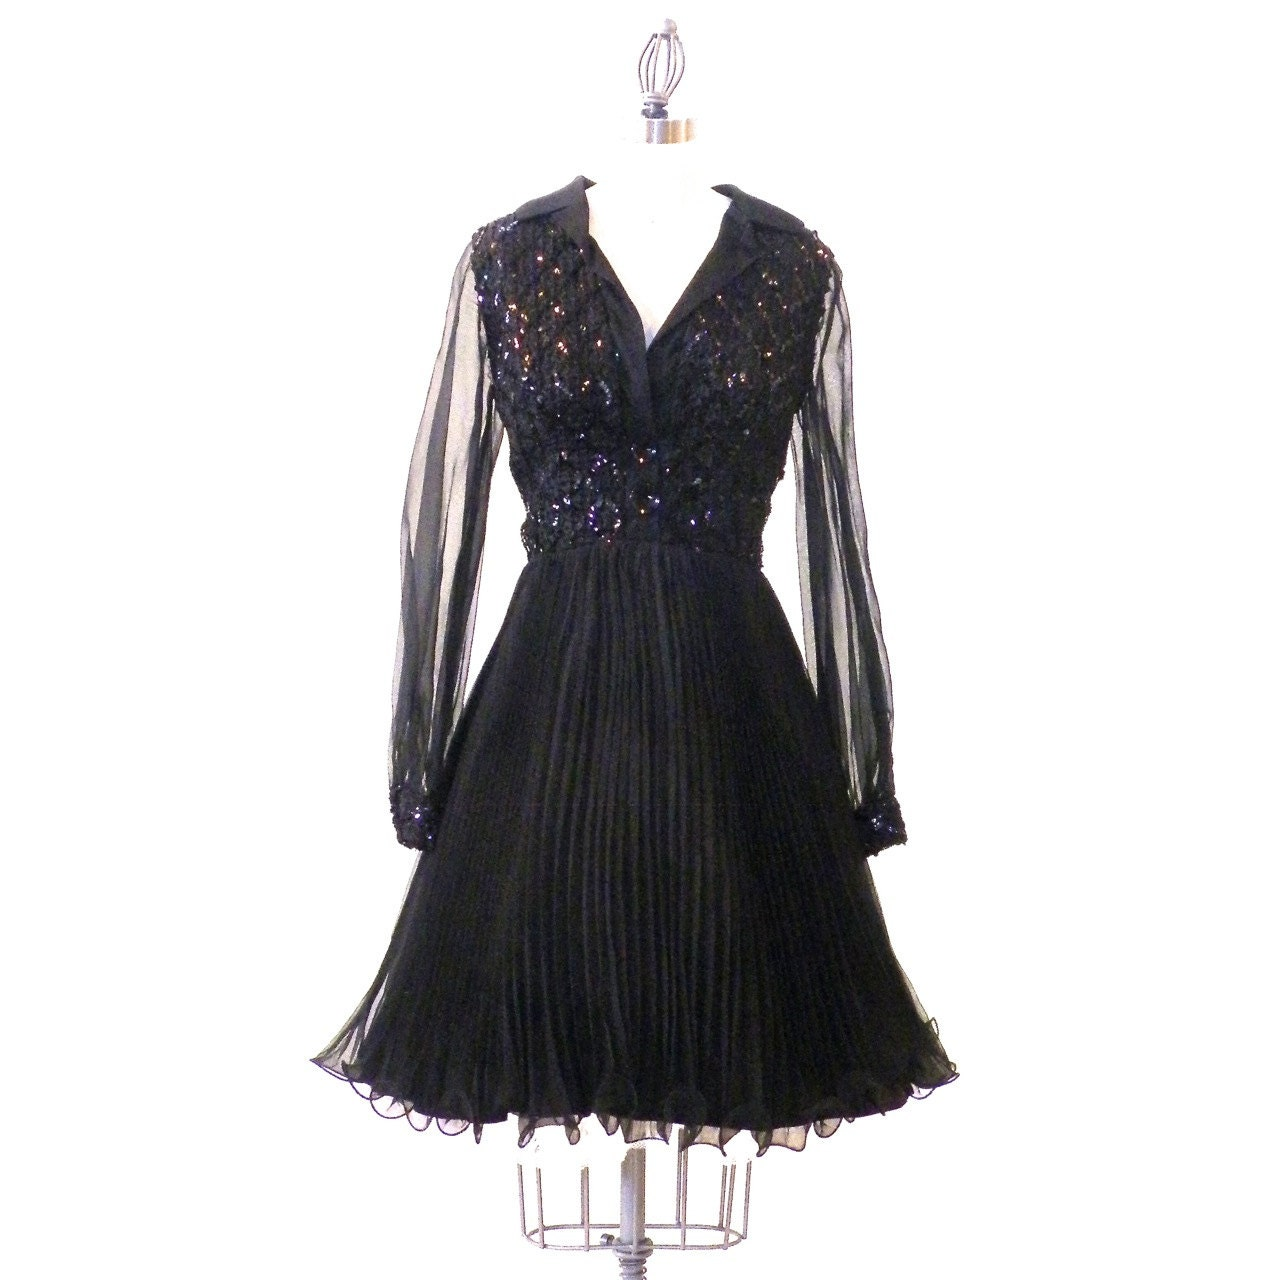 Beaded Gowns Tagged 100 200 The Deco Haus: Vintage LBD 1960s Black Cocktail Party Dress Pleated Sequin